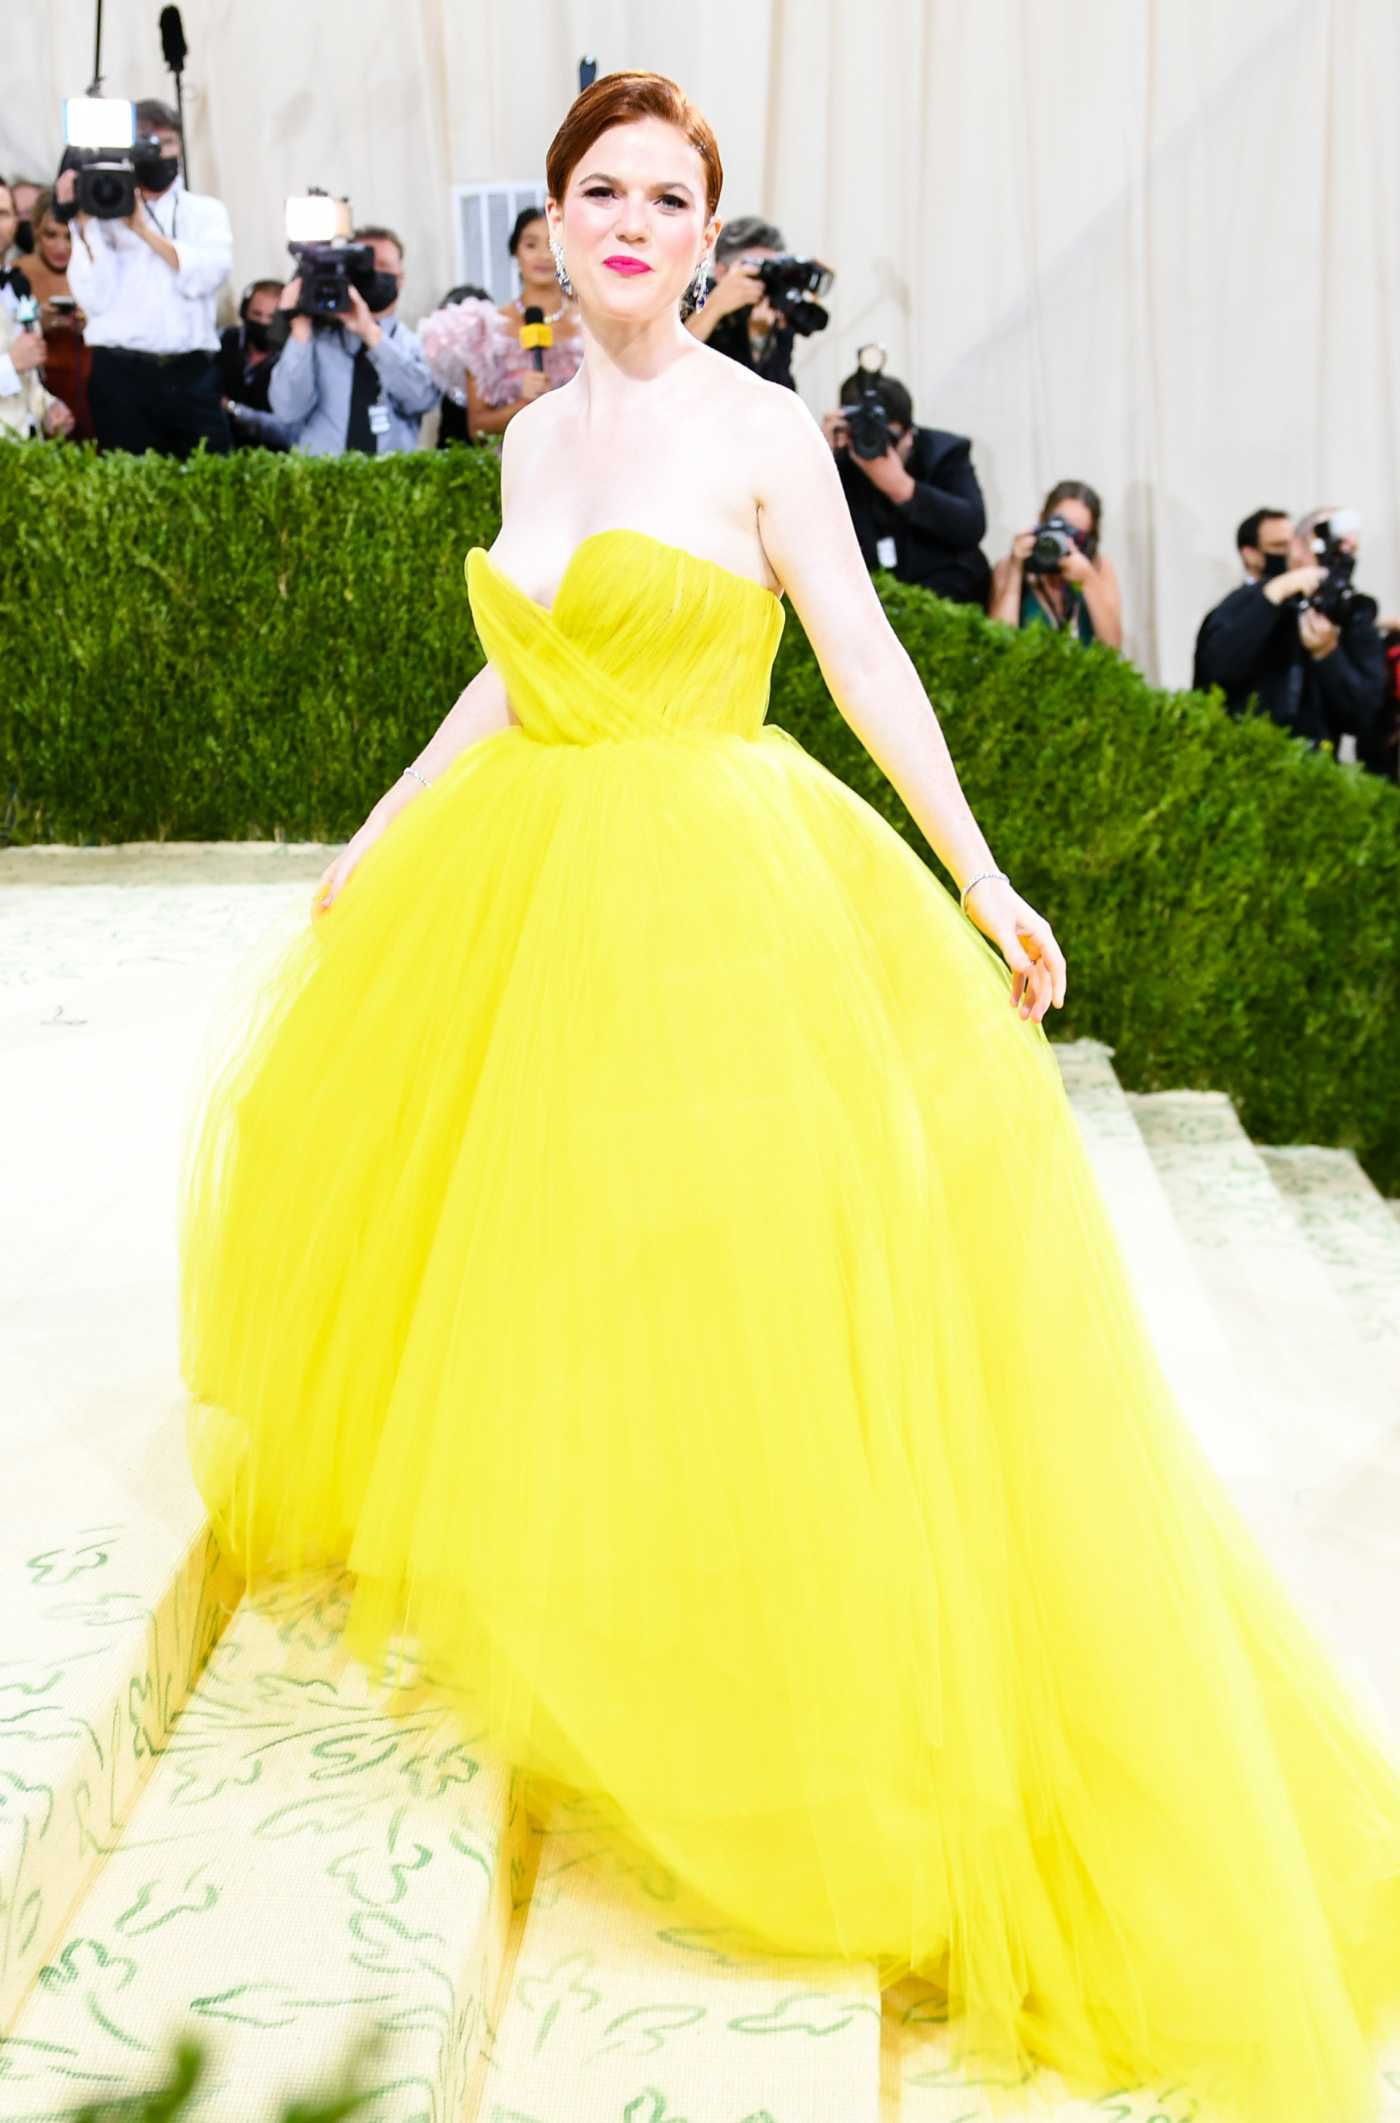 Rose Leslie Attends 2021 Met Gala In America: A Lexicon of Fashion at Metropolitan Museum of Art in New York City 09/13/2021